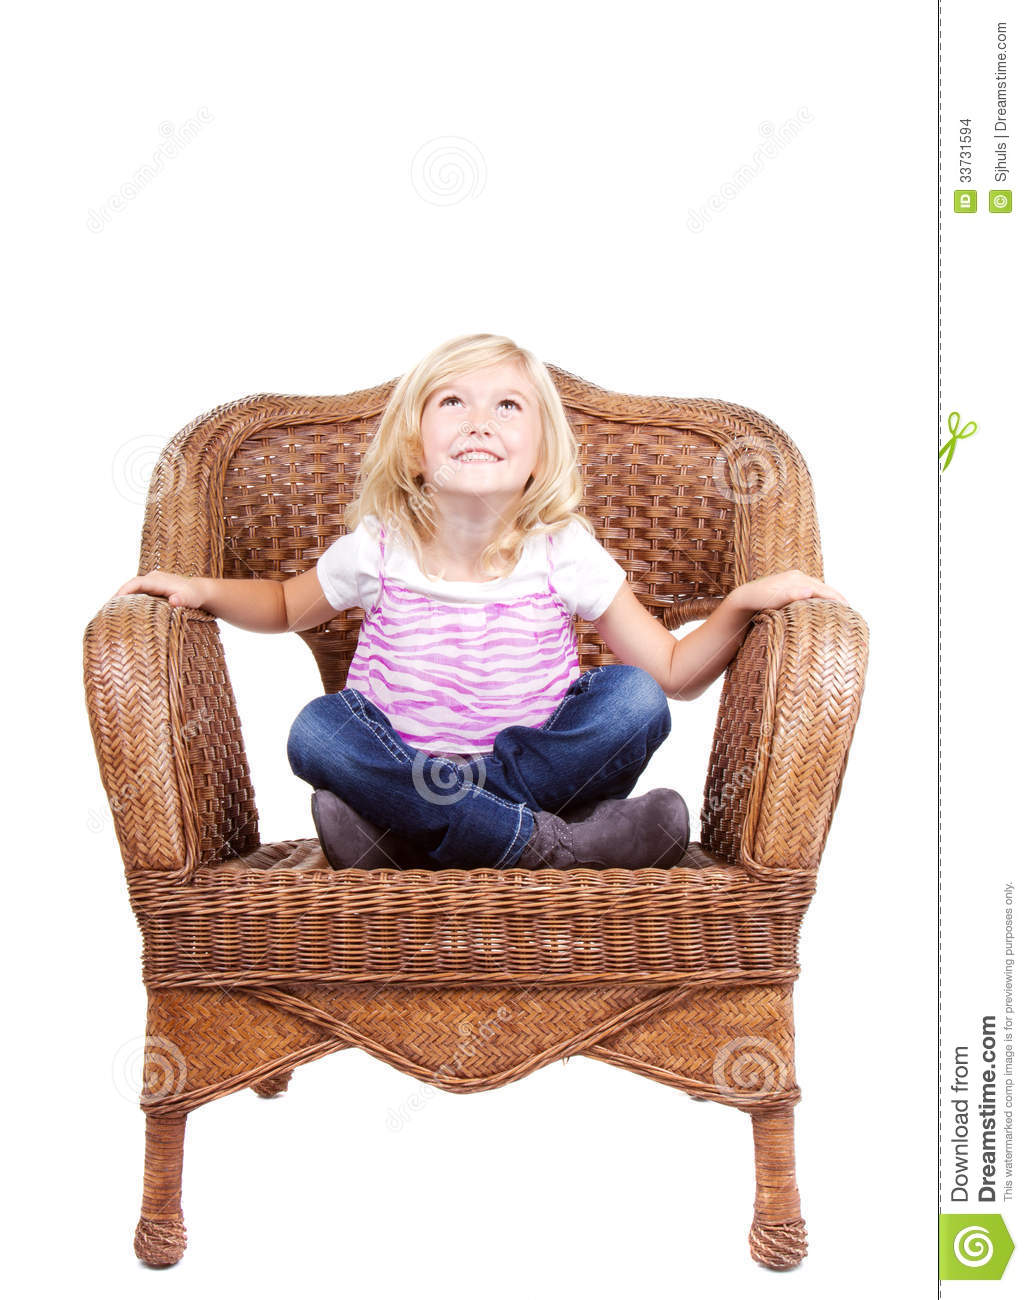 little girl chairs bowl chair cushion sitting on a stock images image 33731594